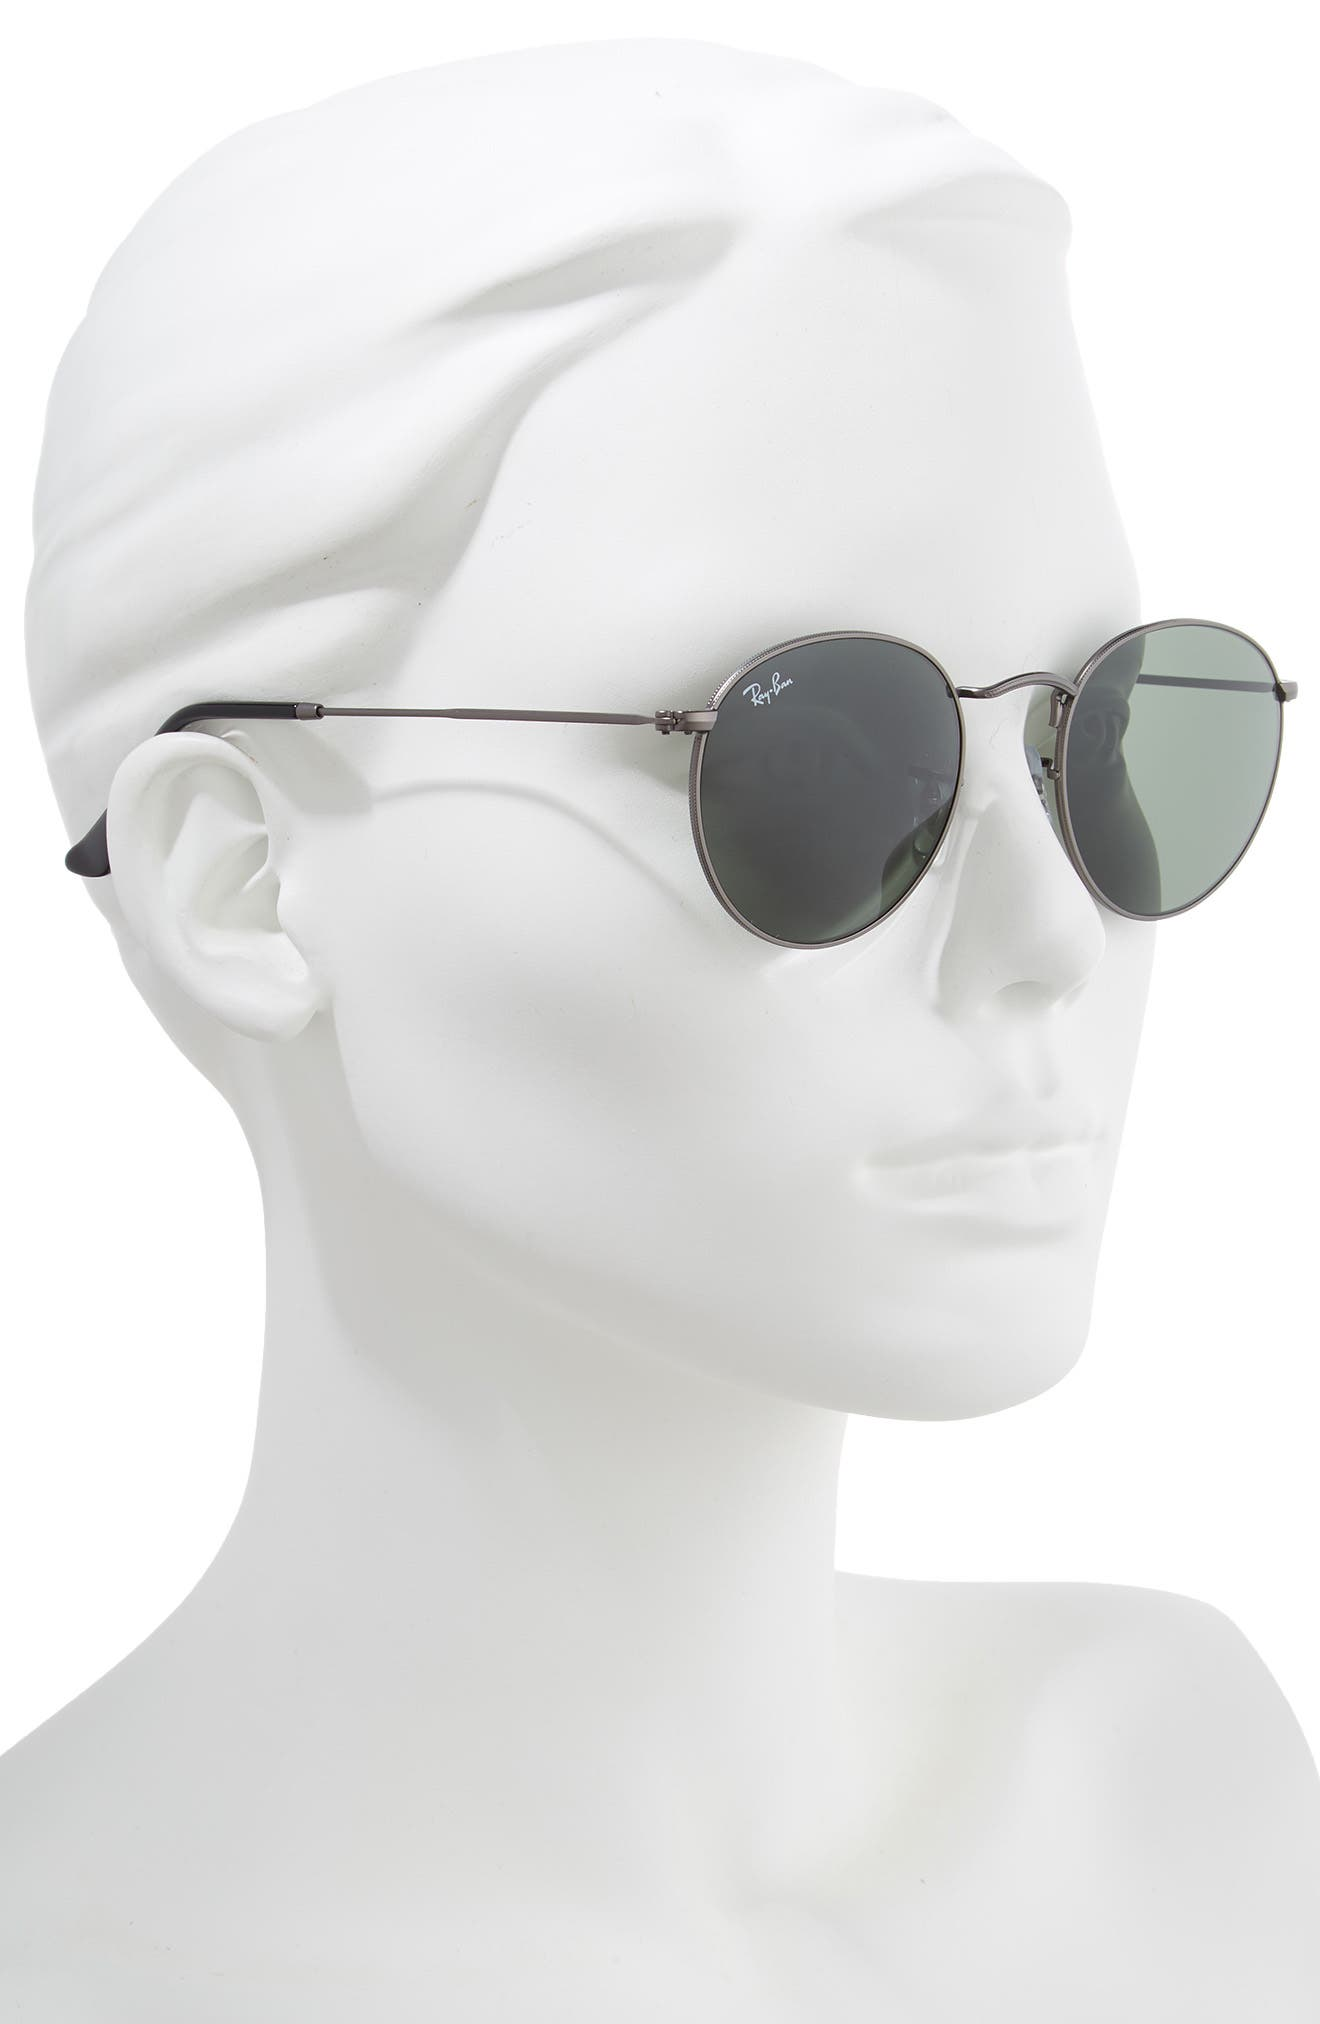 Icons 50mm Round Metal Sunglasses,                             Alternate thumbnail 2, color,                             GUNMETAL/ GREEN SOLID